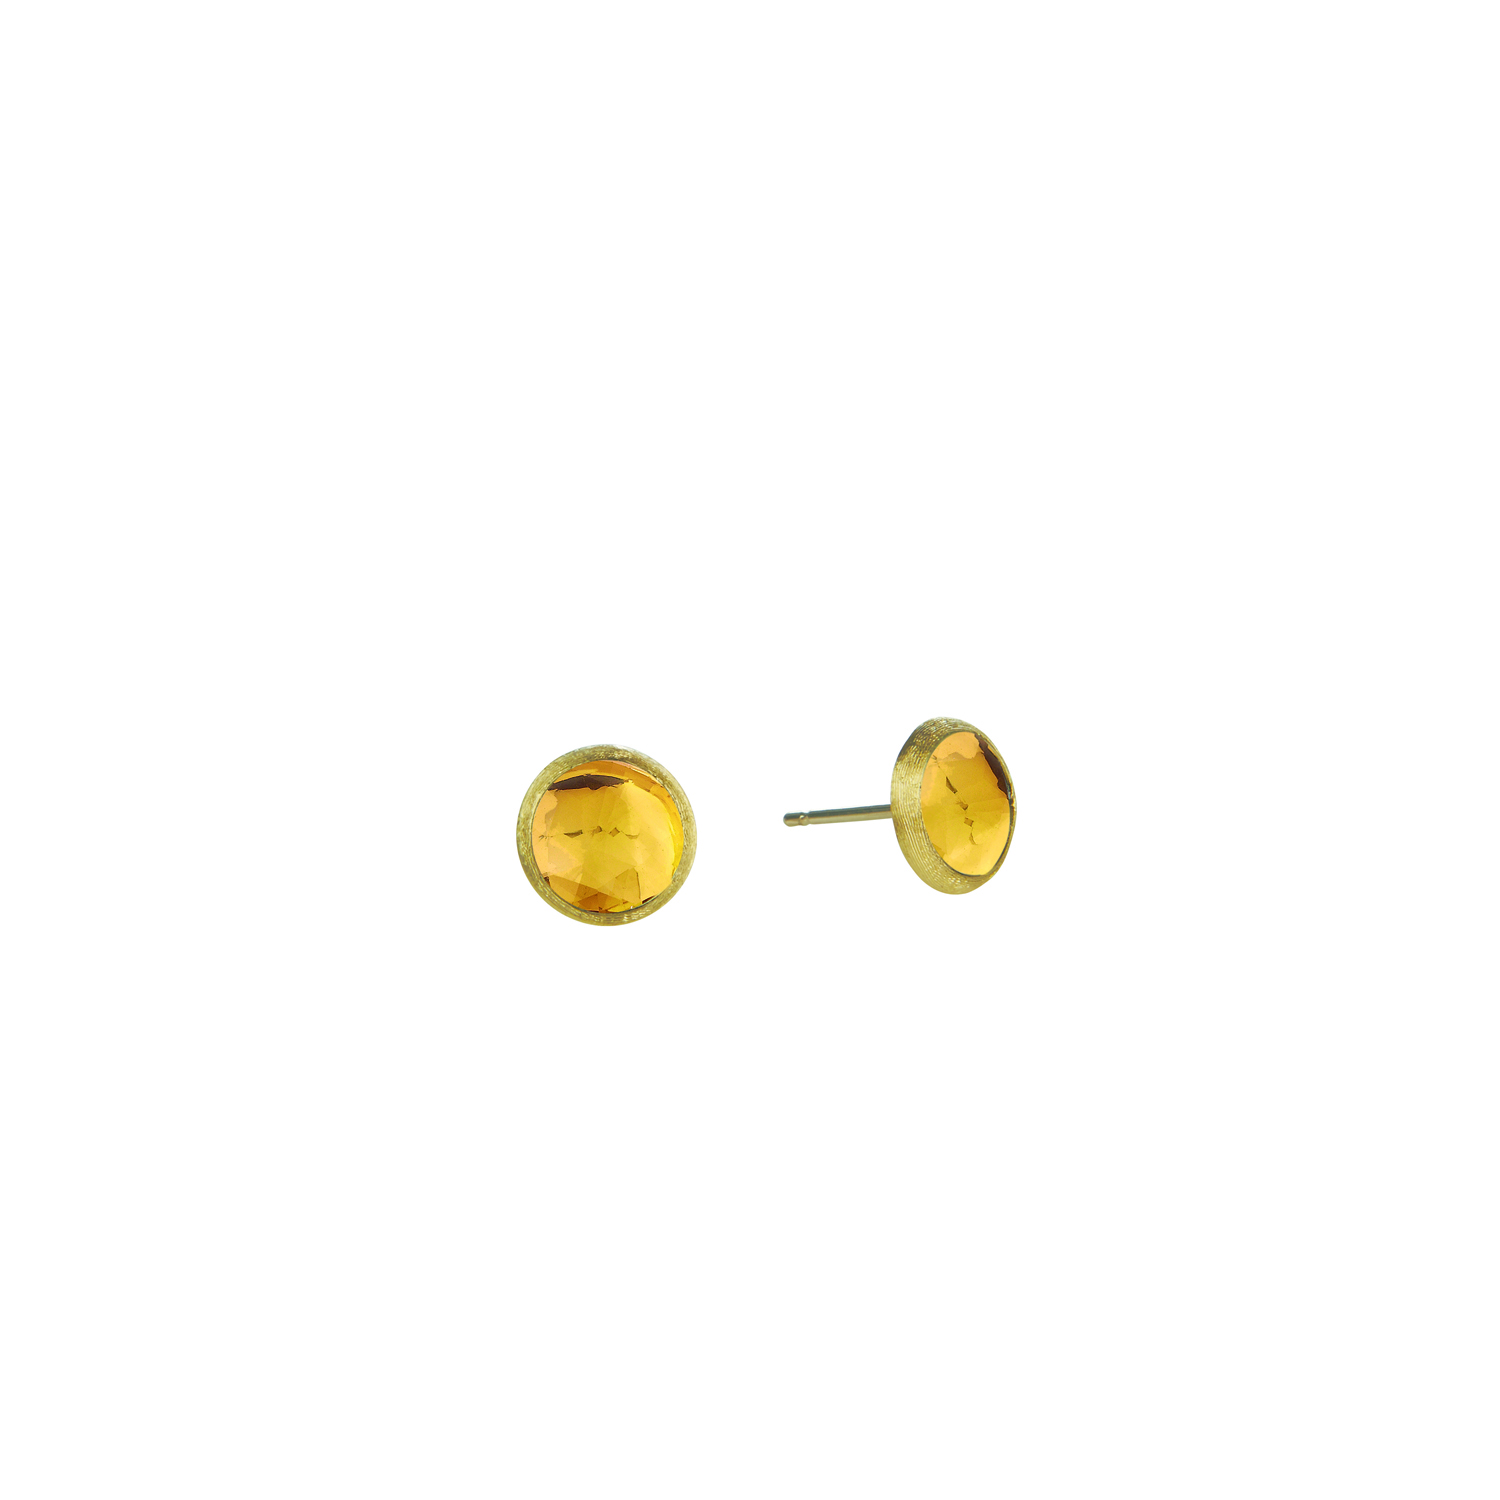 Marco Bicego Ohrstecker Jaipur 18 ct. Gelbgold OB957 QG01